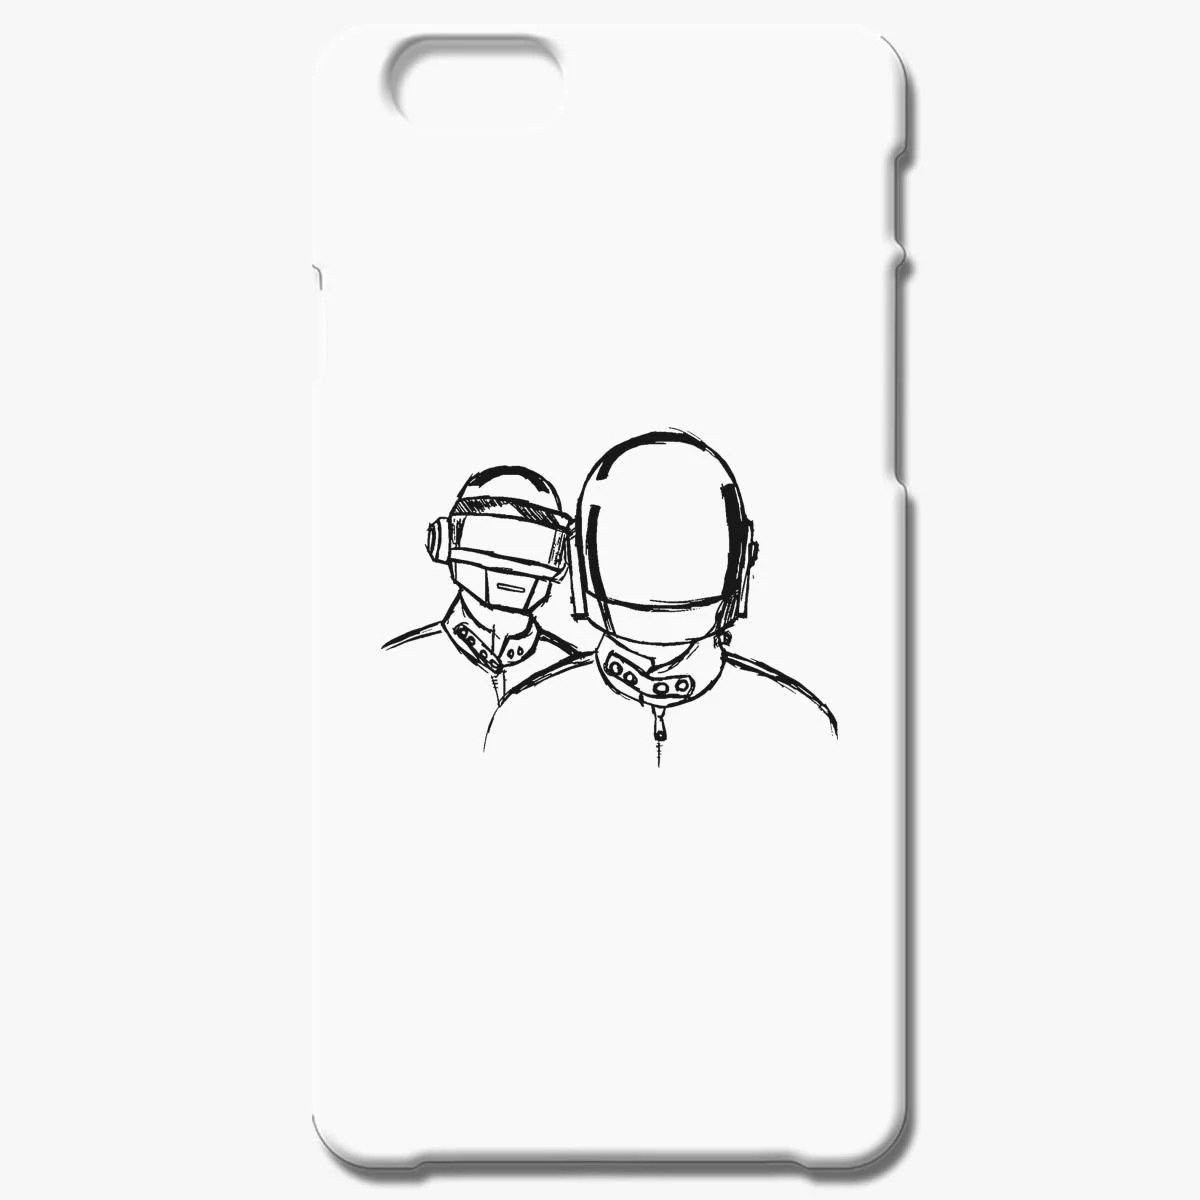 Daft Punk Sketch Iphone 6 6s Case